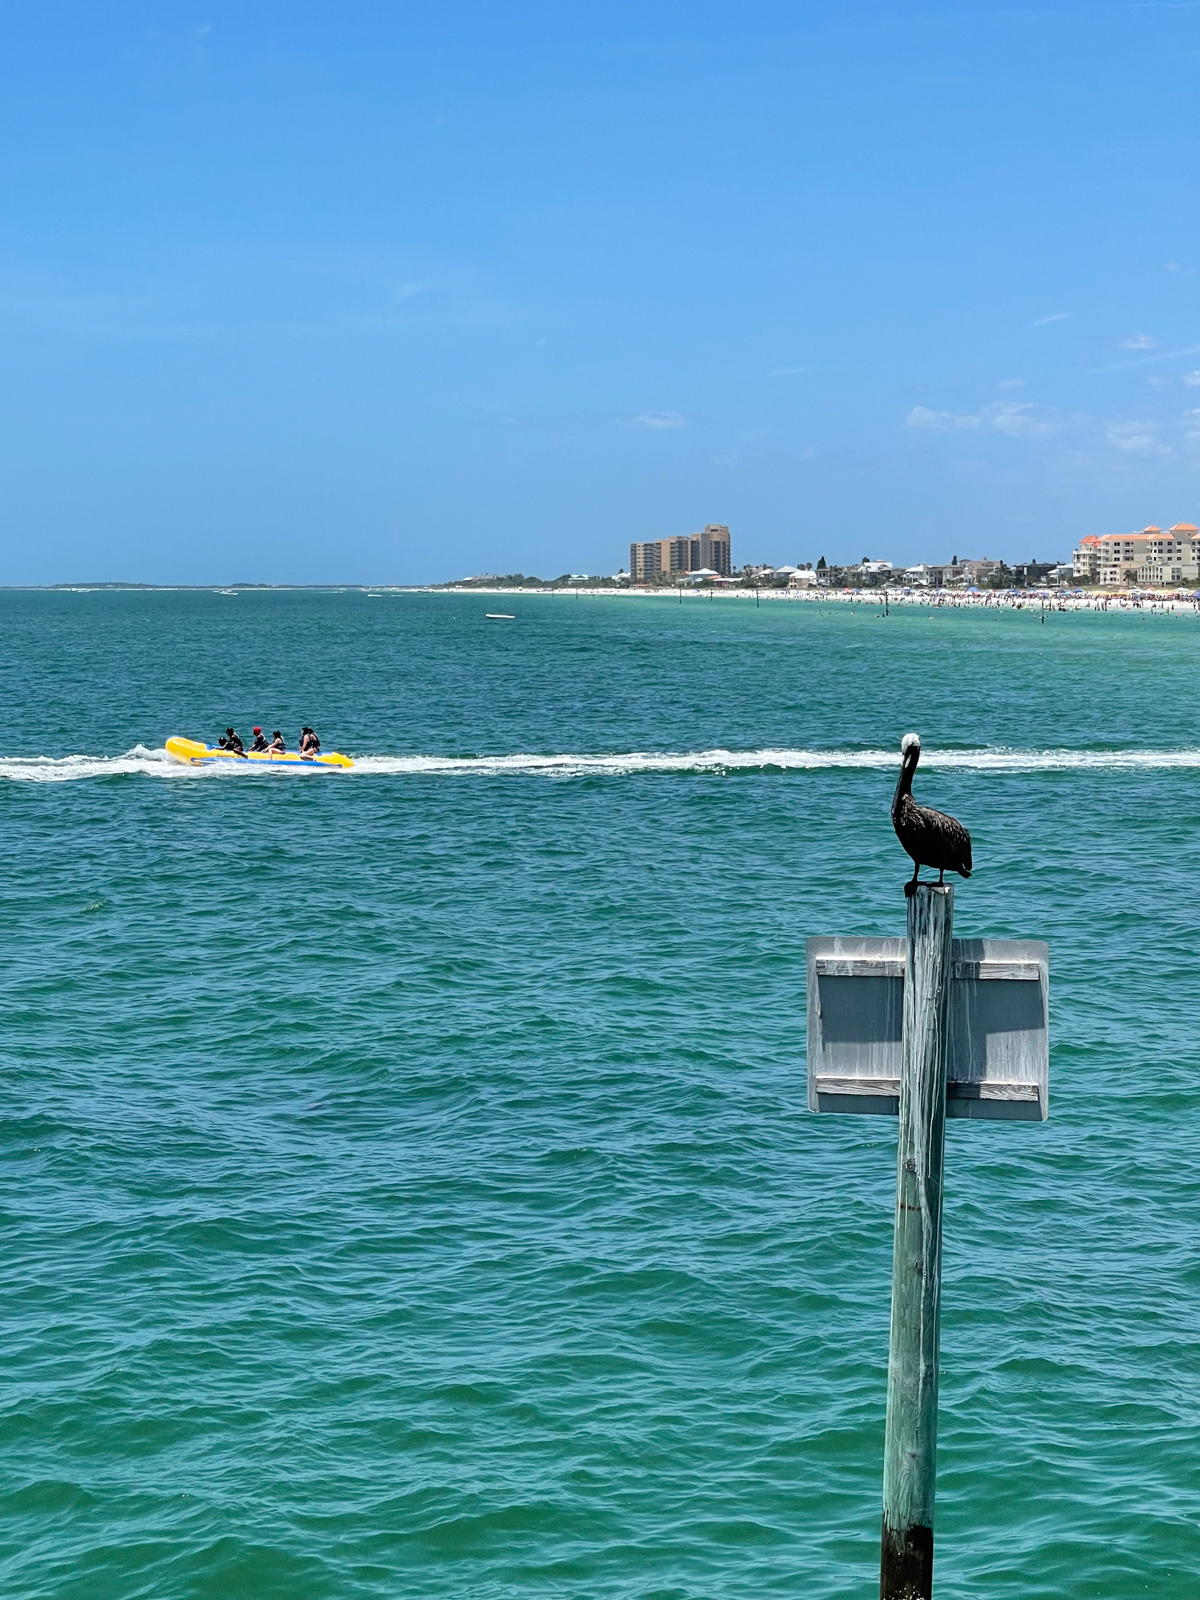 Pelican on Pier 60 at Clearwater Beach